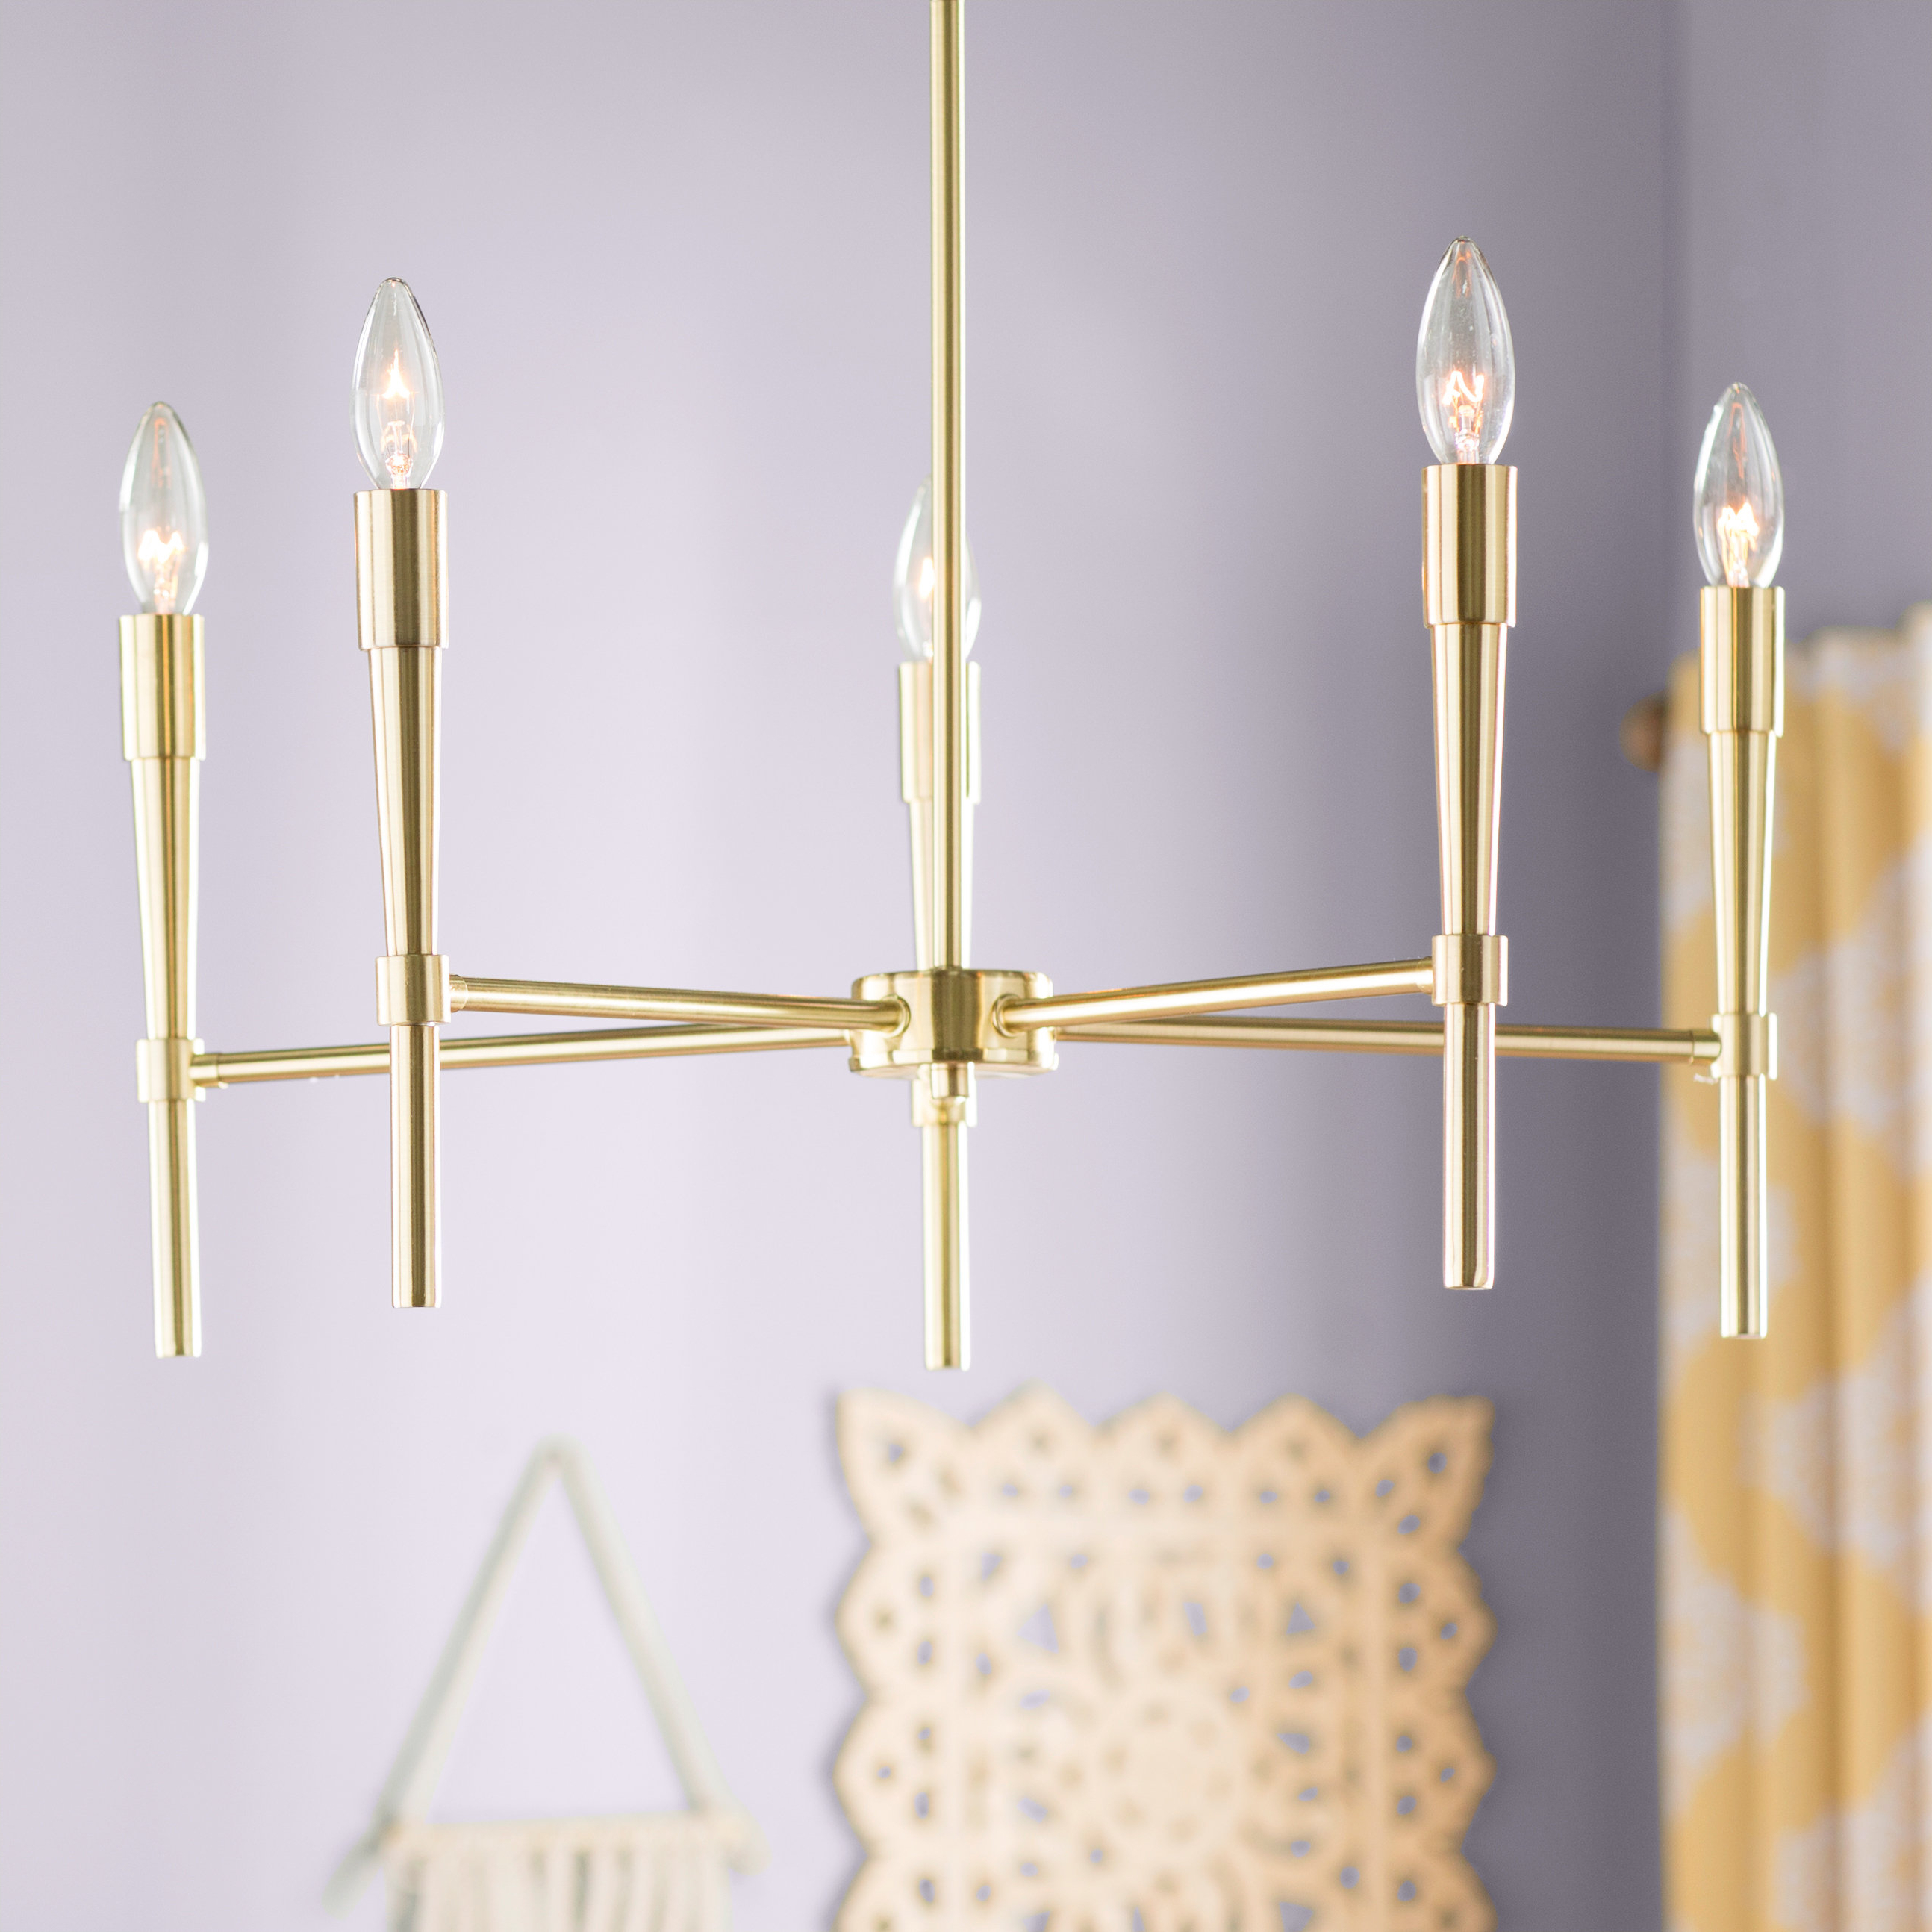 Tabit 5 Light Geometric Chandeliers Inside Most Recent Ashleigh 5 Light Candle Style Chandelier (View 12 of 20)